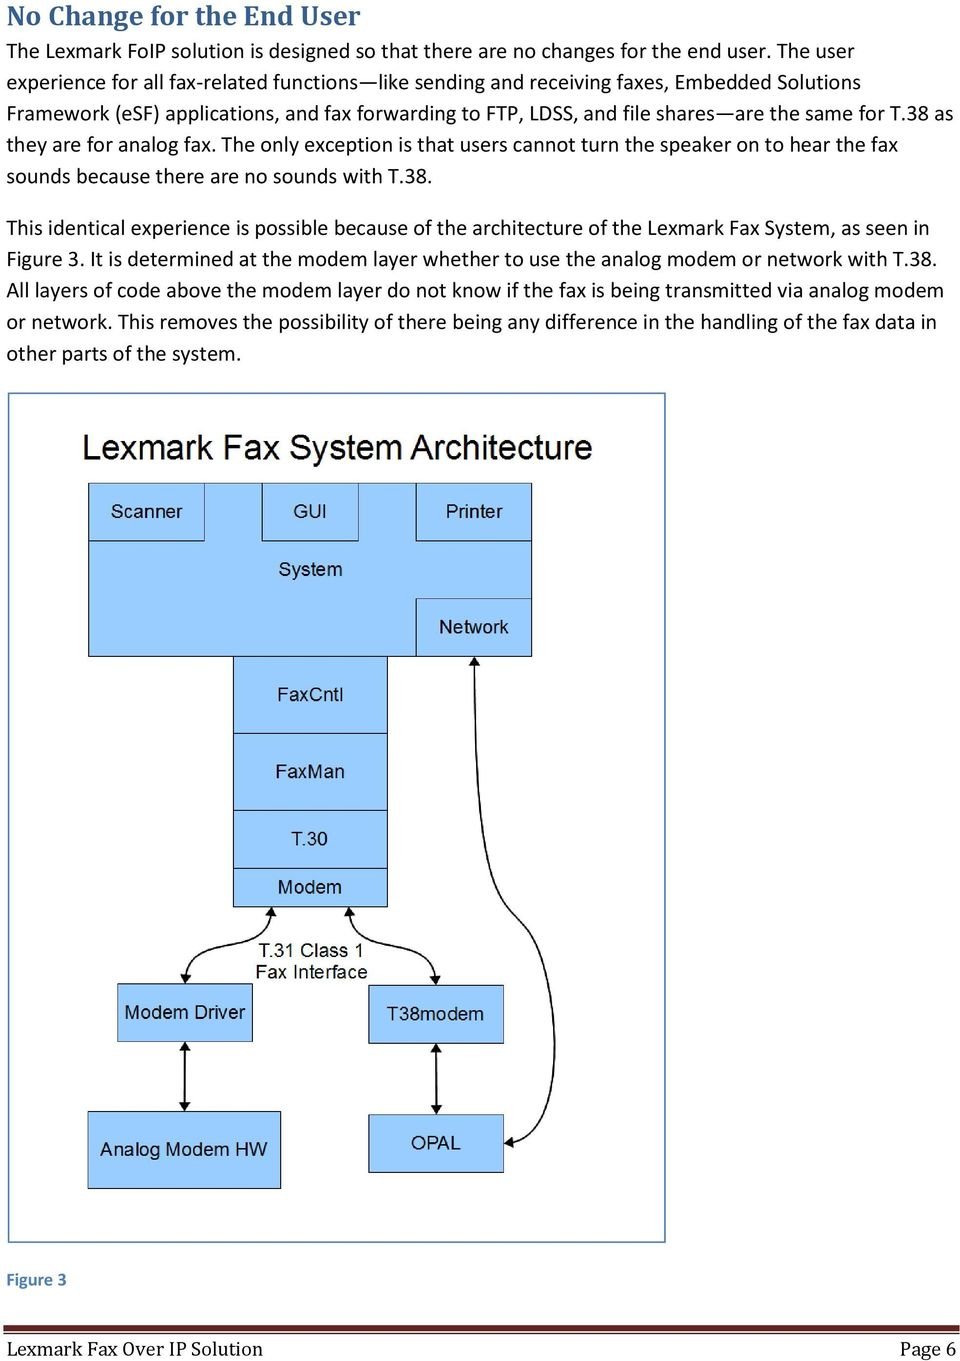 T.38 as they are for analog fax. The only exception is that users cannot turn the speaker on to hear the fax sounds because there are no sounds with T.38. This identical experience is possible because of the architecture of the Lexmark Fax System, as seen in Figure 3.